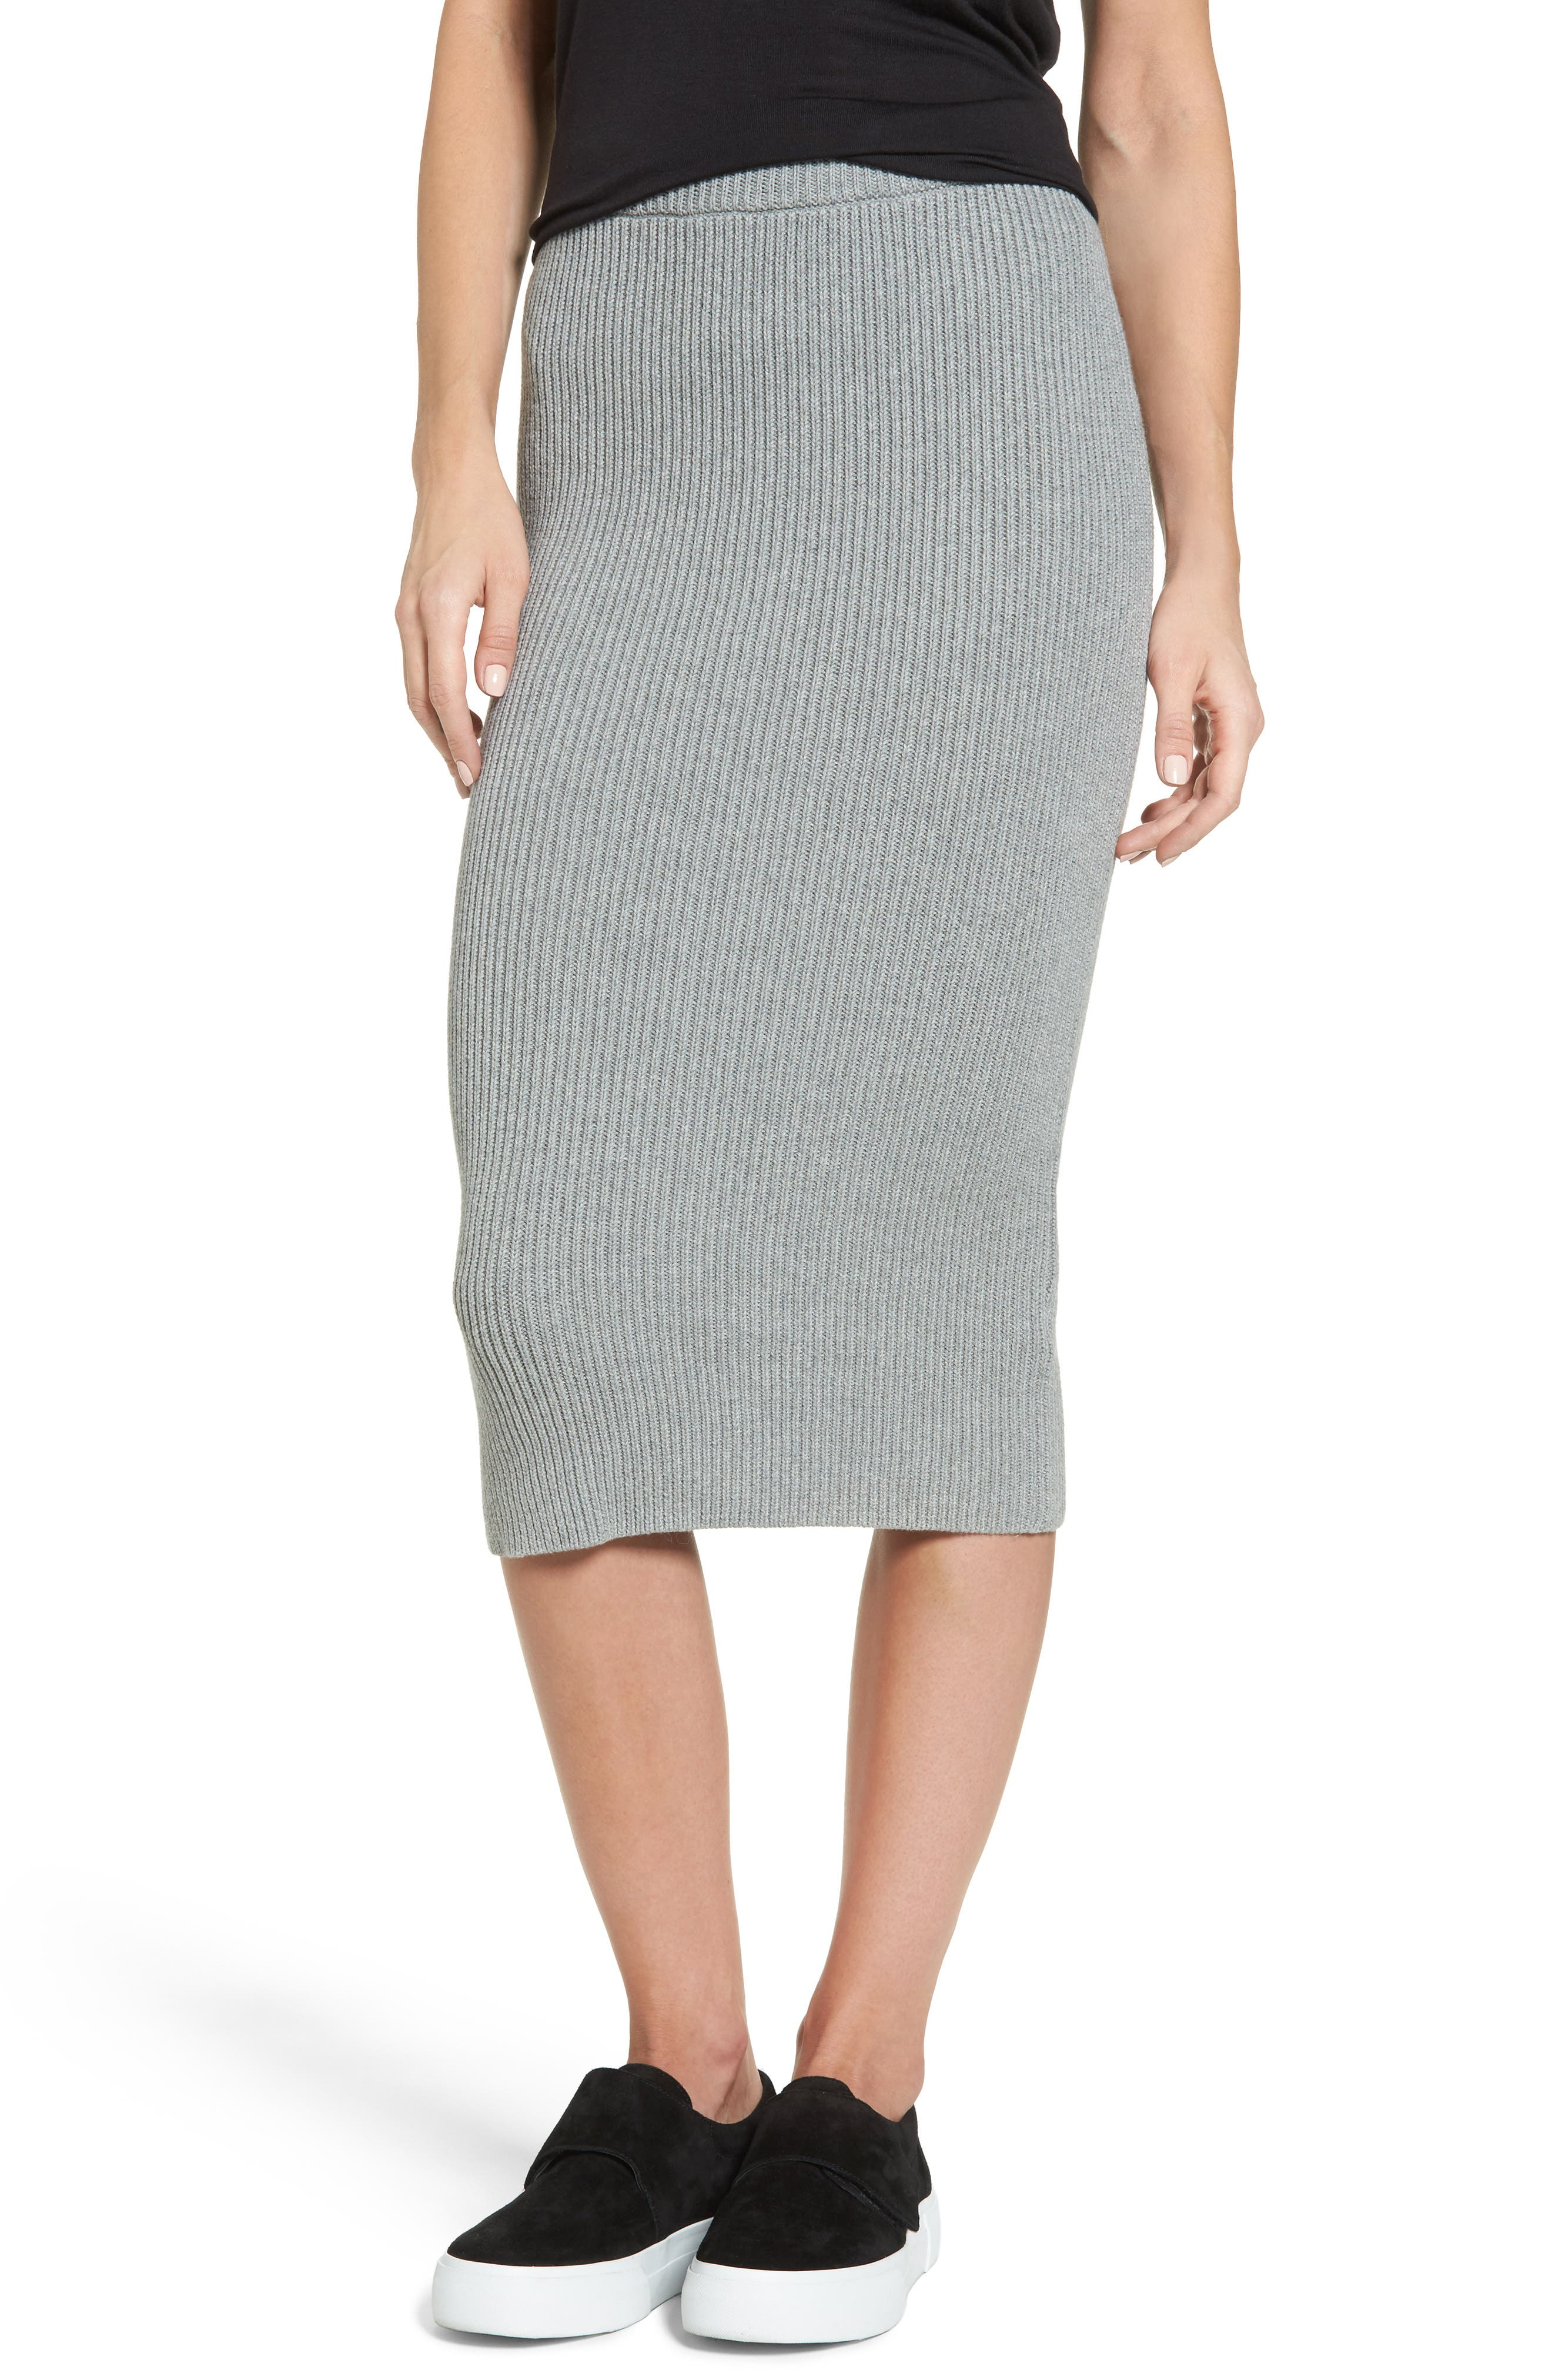 The Fifth Label Galactic Knit Skirt